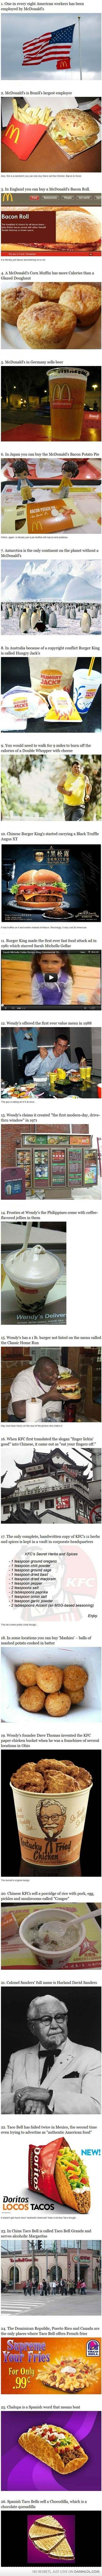 26 Things You Probably Didn't Know About Fast Food